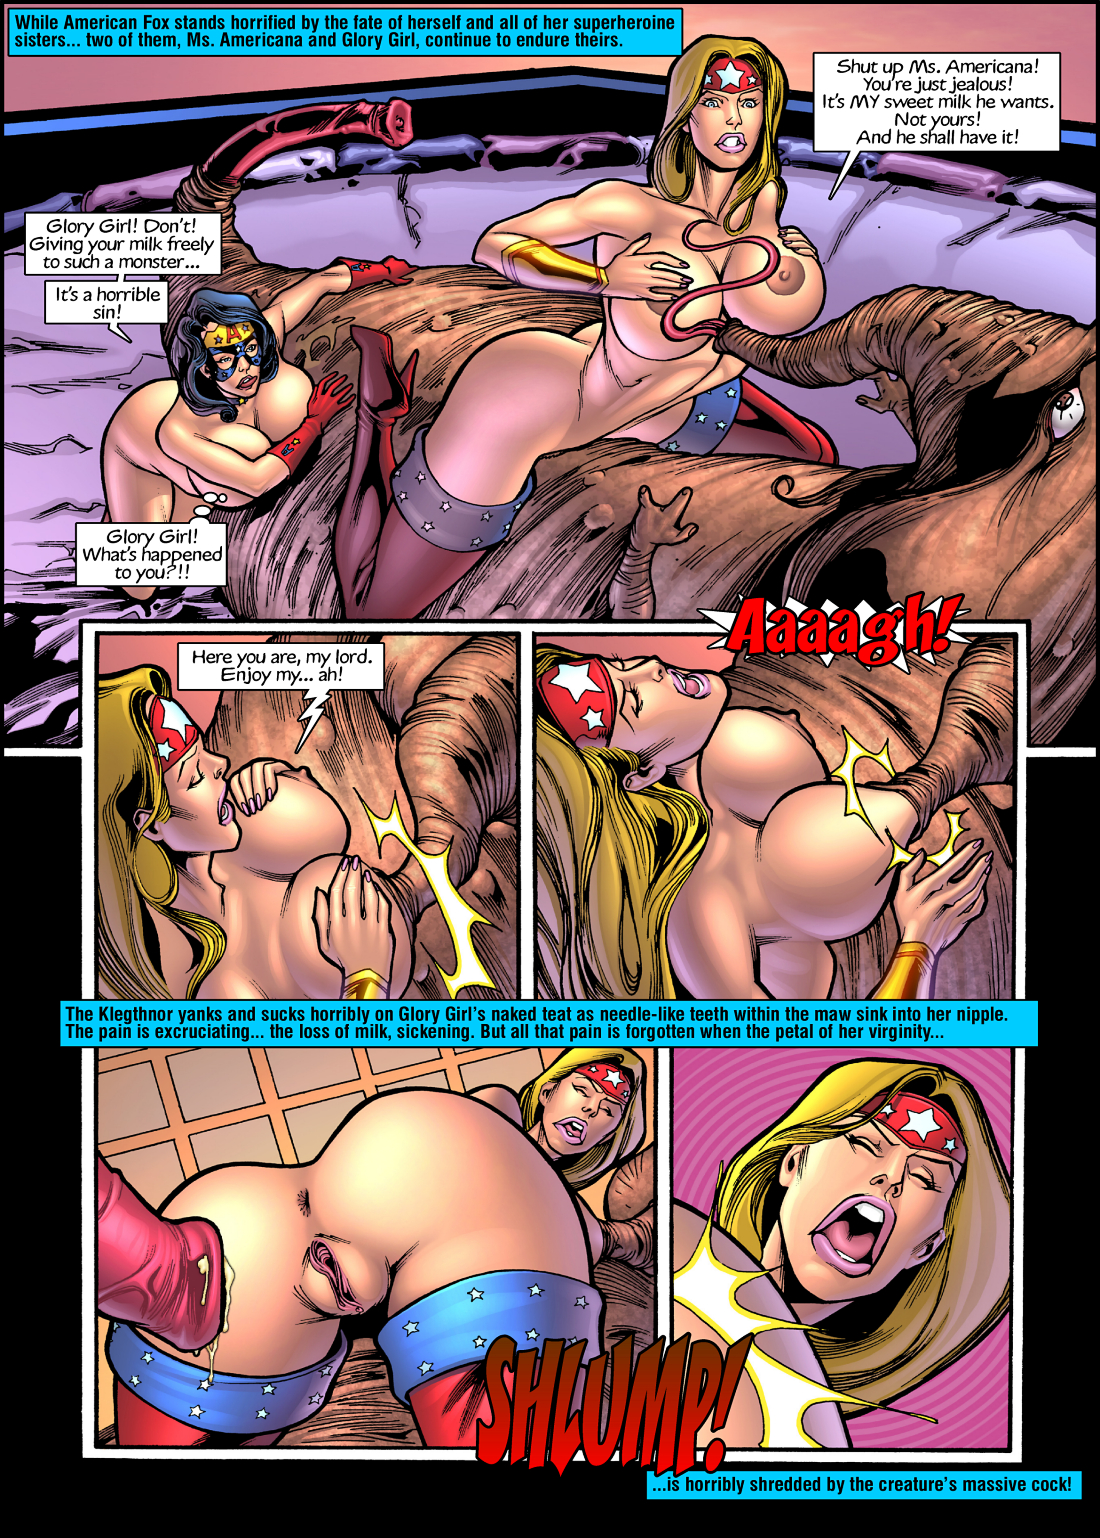 3d wonder woman hentai adventures erotic sensual stripper